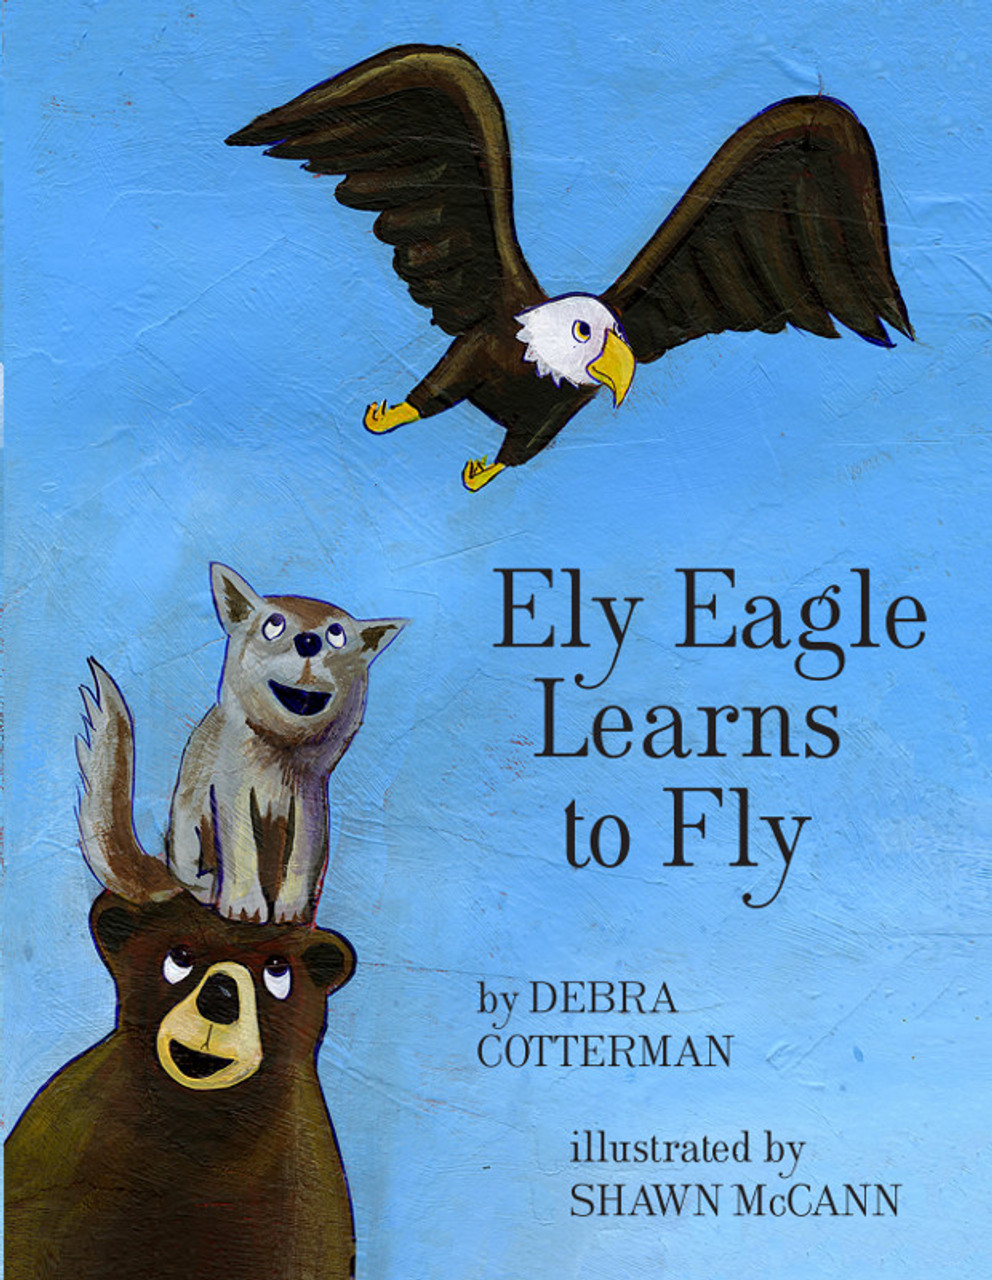 Ely Eagle Learns to Fly